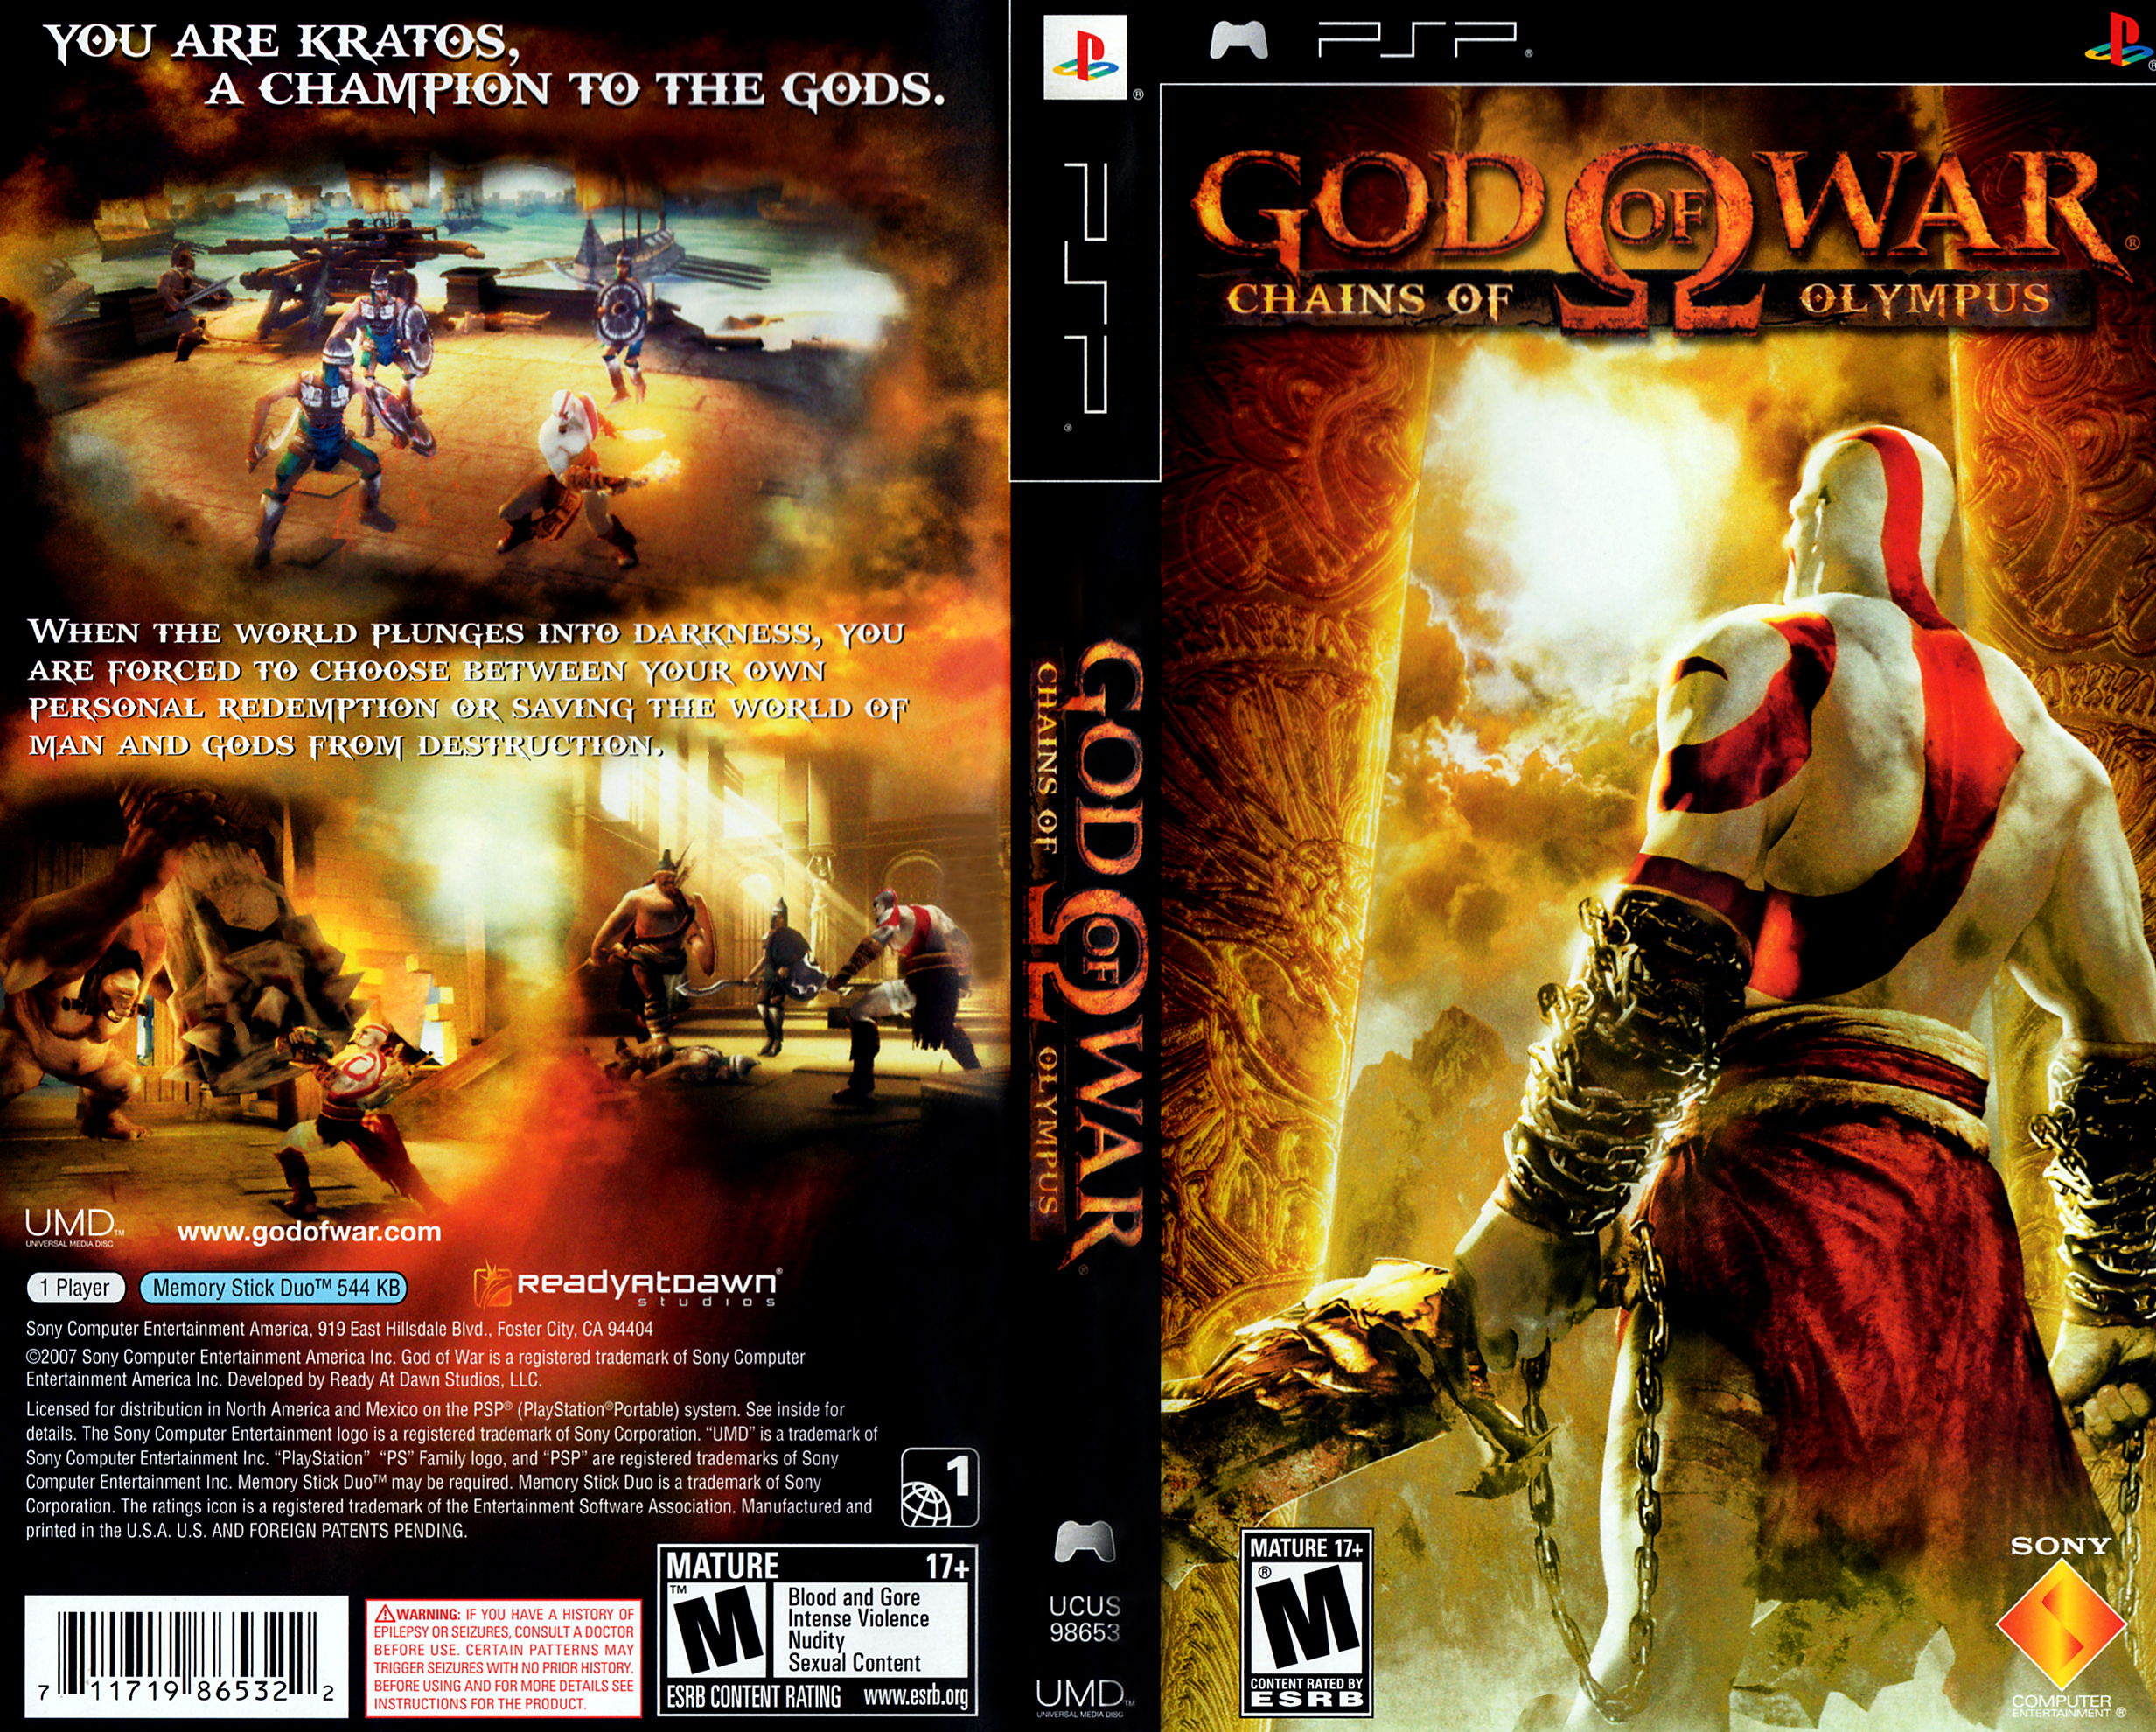 God of War - Chains of Olympus (U)(PSN) ROM / ISO Download for PSP